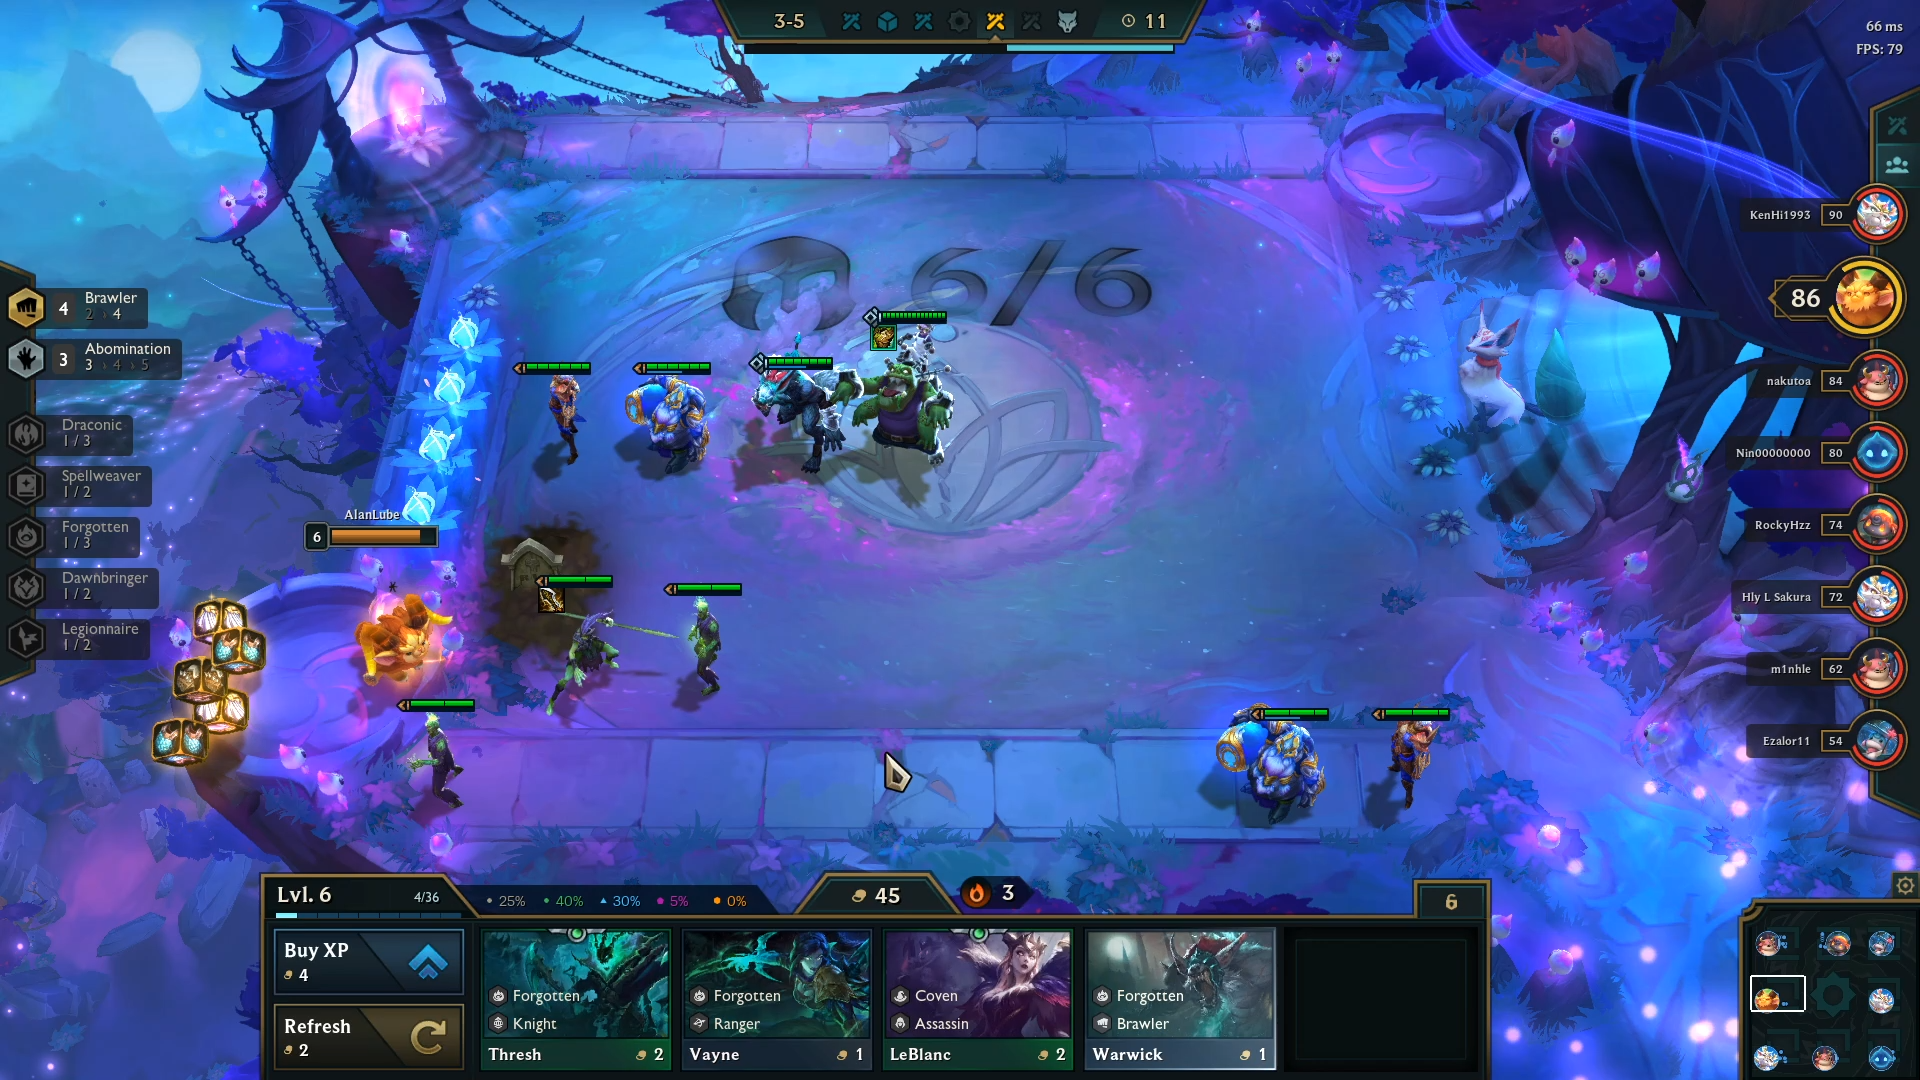 TFT Set 5 Positioning Example